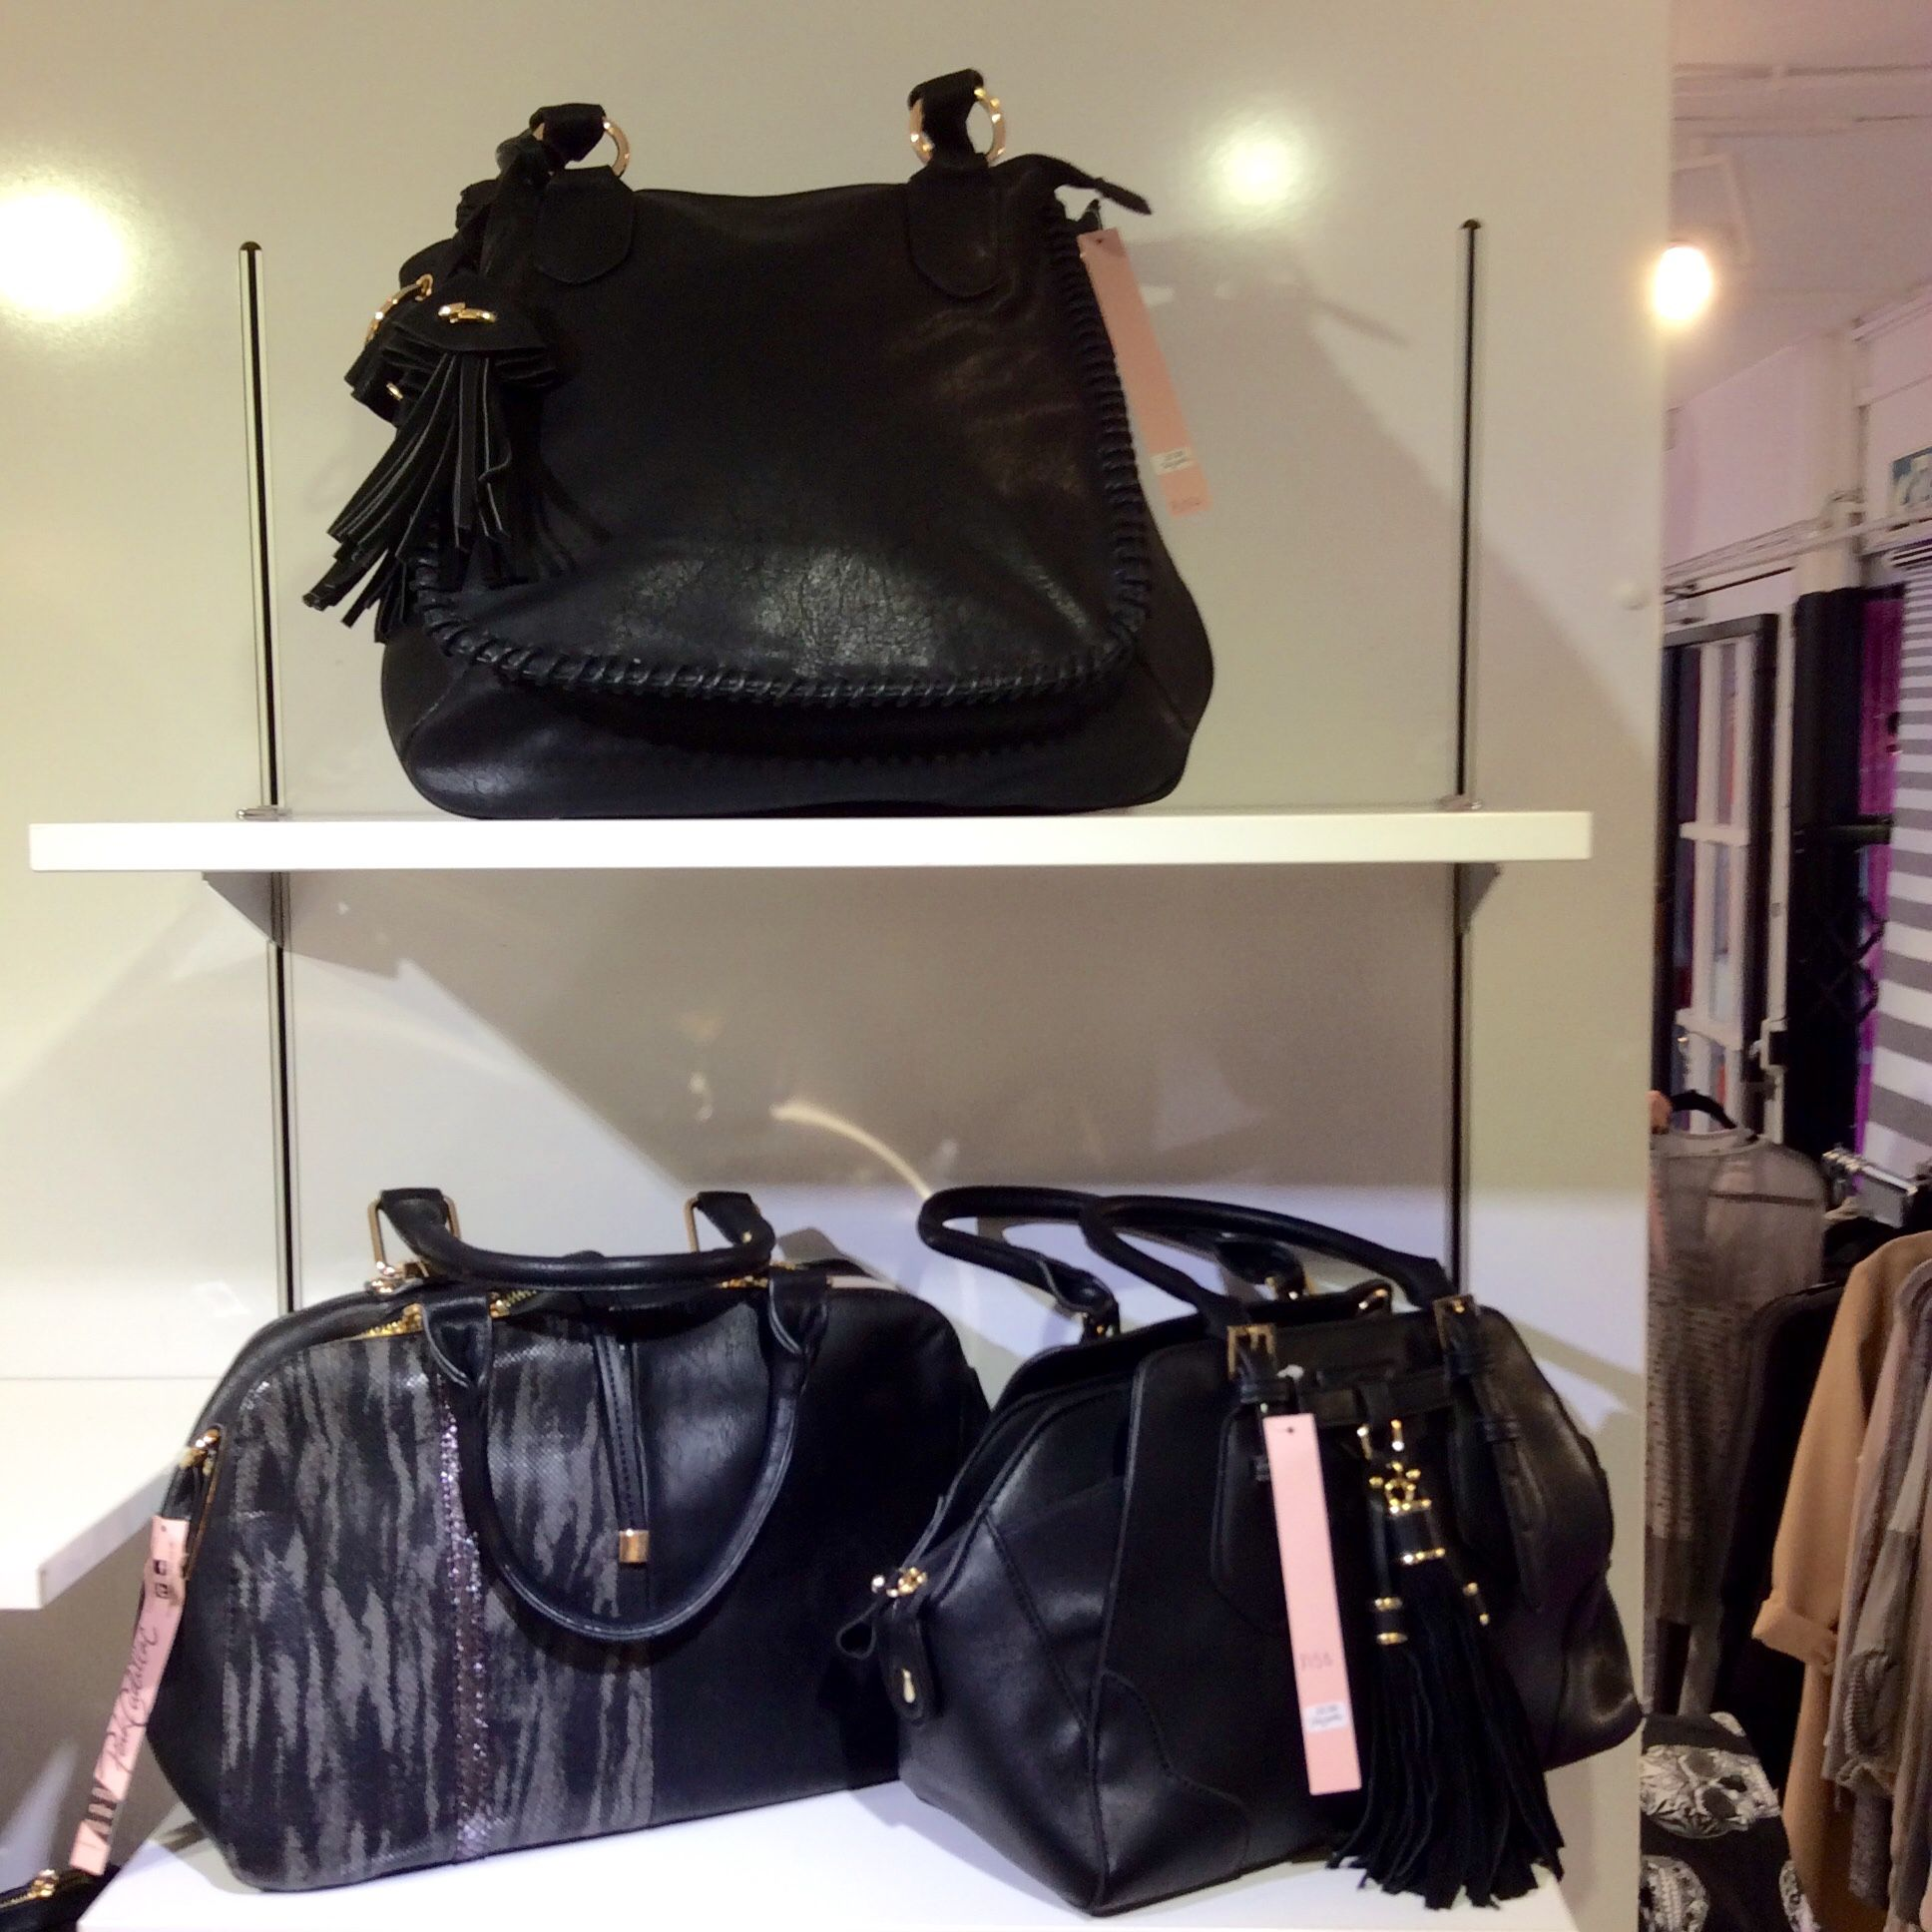 purses news style with travel luggage brand luxury and auto cute automotive in cadillac